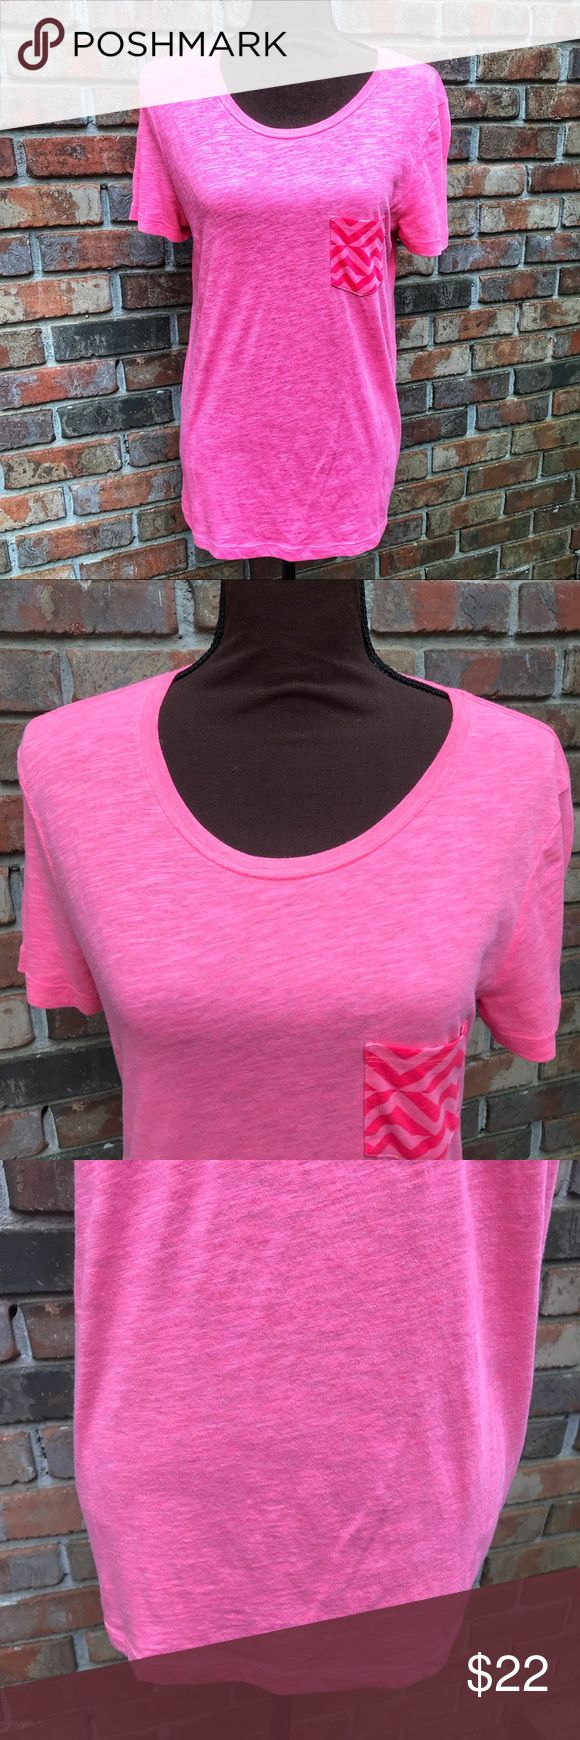 [PINK] Hot Pink Chevron Pocket Burnout Tee Lightly Used   Excellent Condition   Hot Pink Color   Pink Chevron Print Pocket Tee   Short Sleeve   Burnout Style Design   Lightweight   Soft   Length From Shoulder to Hem: 26ins   Bust: 18ins   Sleeve Length: 8ins   60% Cotton   40% Polyester   PINK Victoria's Secret Tops Tees - Short Sleeve